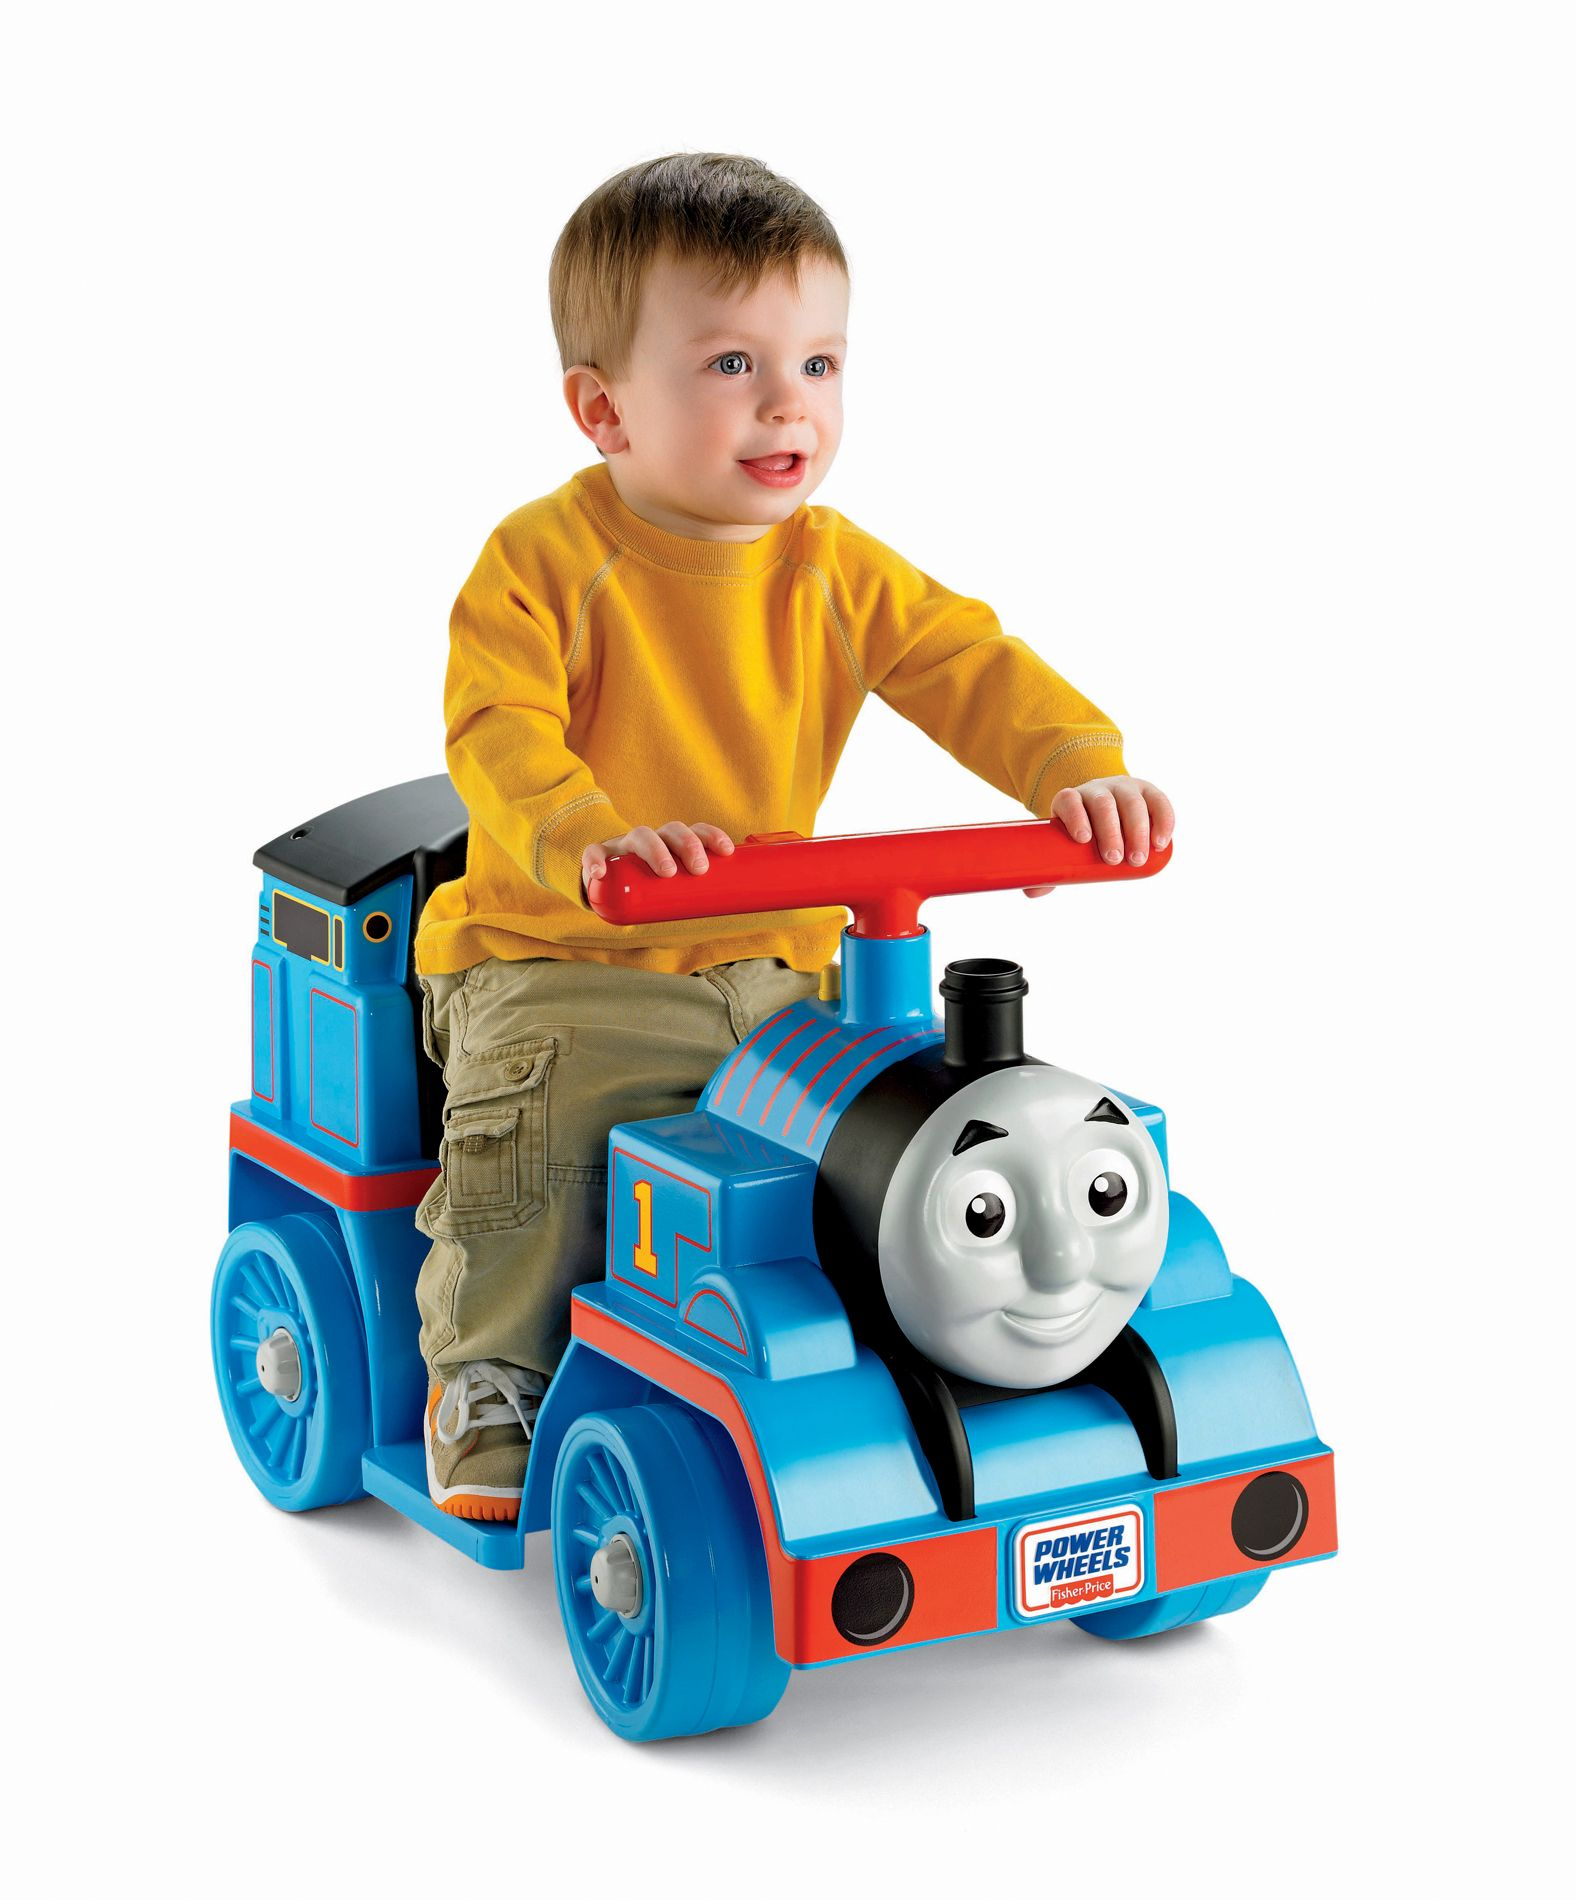 Power Wheels Power Wheels Thomas Toddler